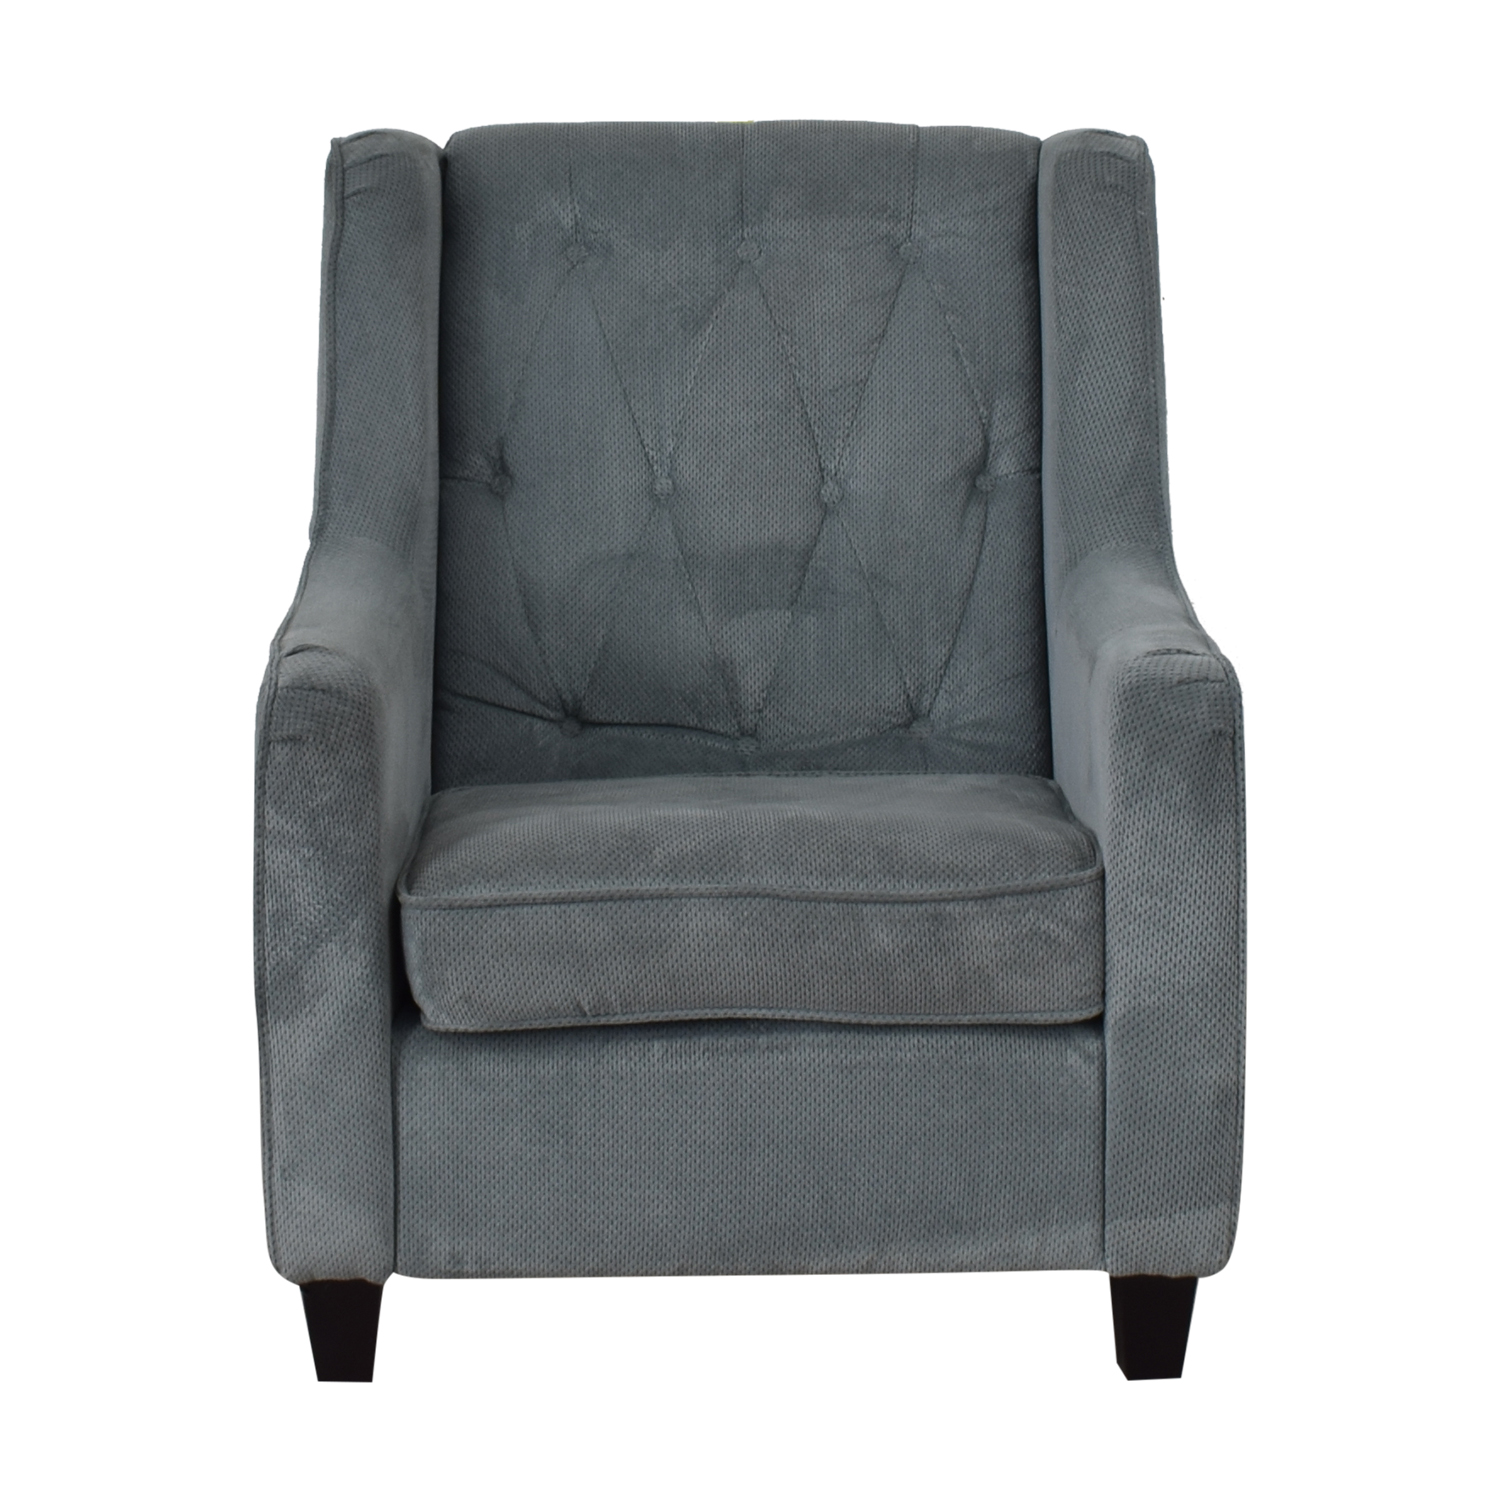 Chairs At Homegoods.90 Off Homegoods Homegoods Blue Accent Chair Chairs